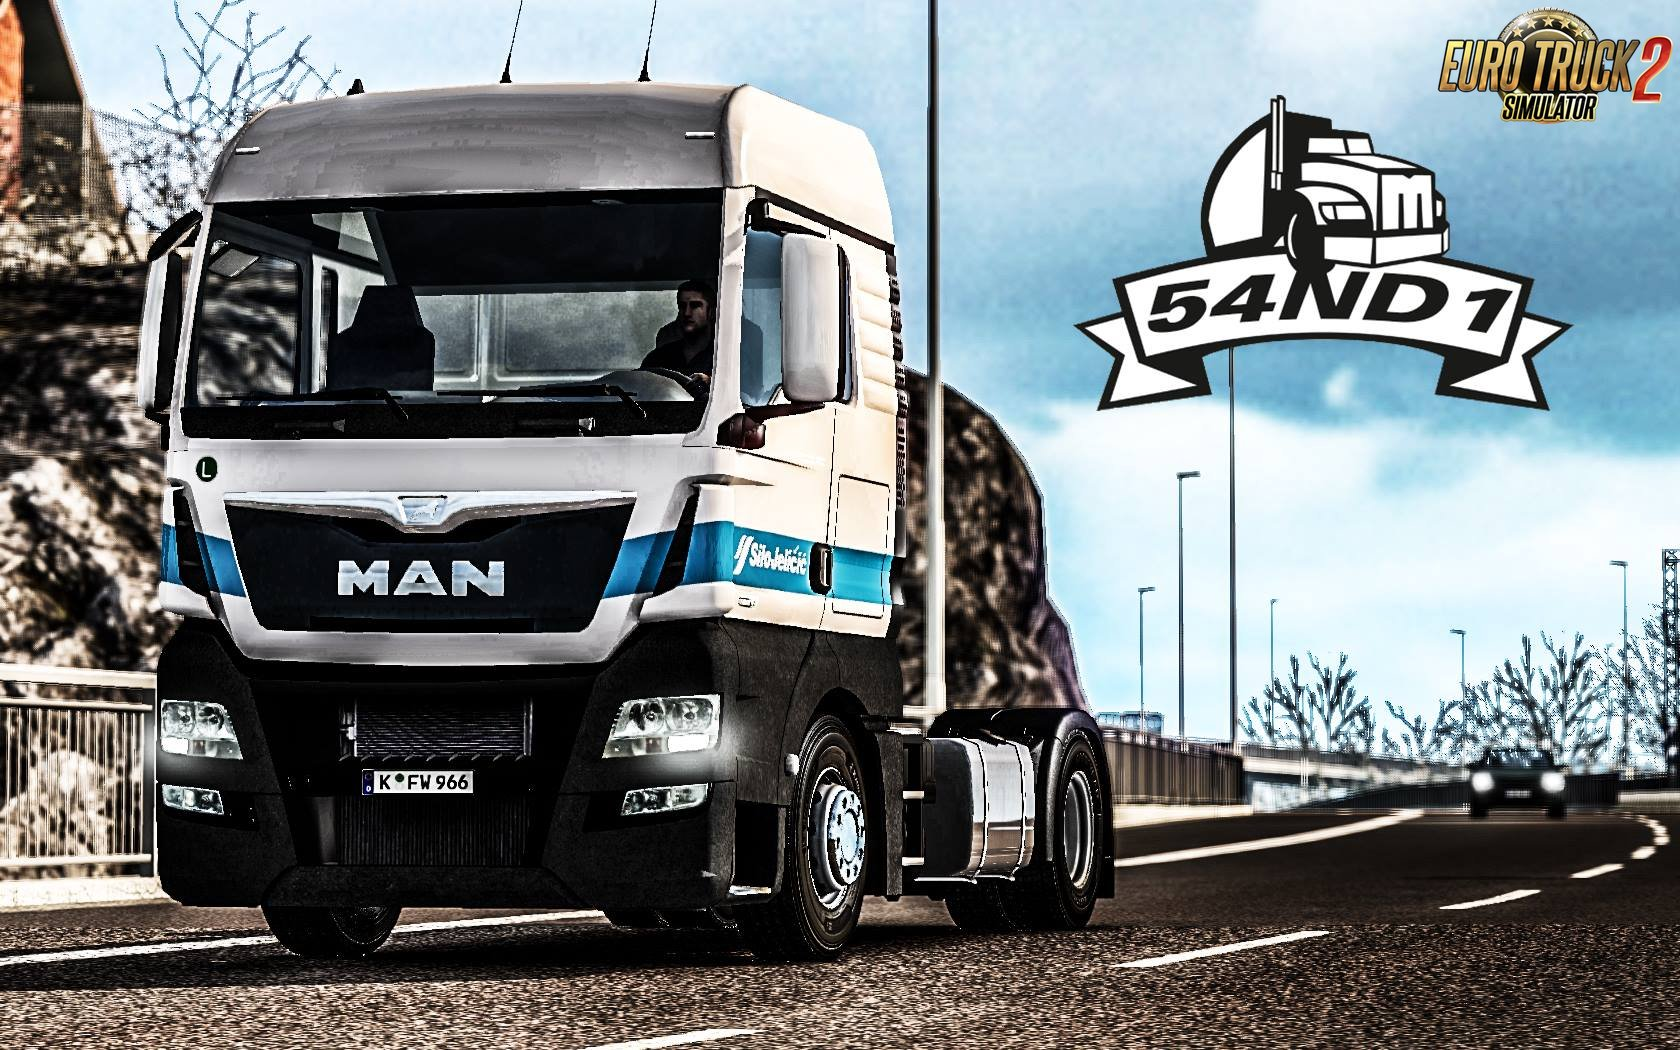 Silo Jelicic Skin for Man TGS Euro 6 v1.0 by 54ND1M0D5 (1.26.x)